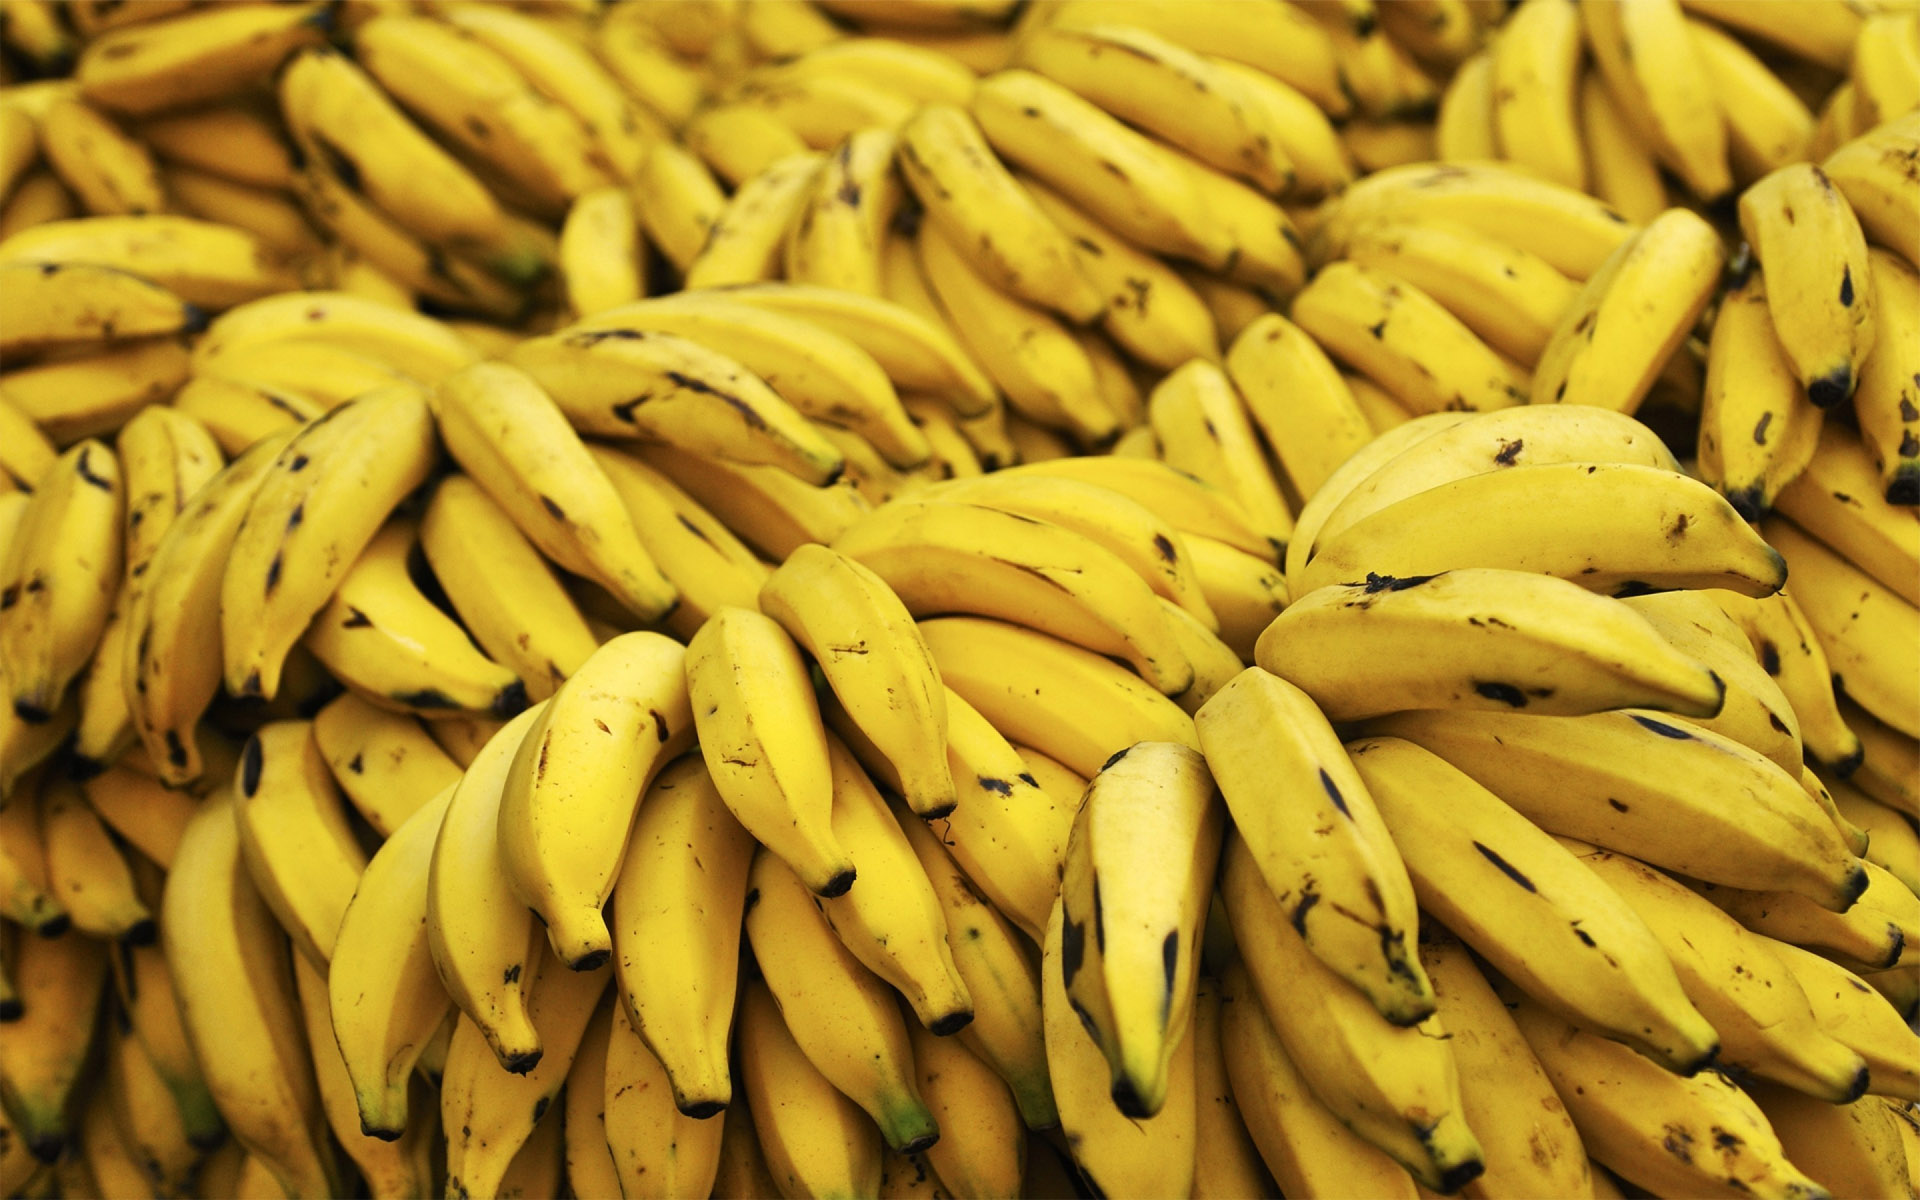 banana bunches hd wallpaper | hd latest wallpapers